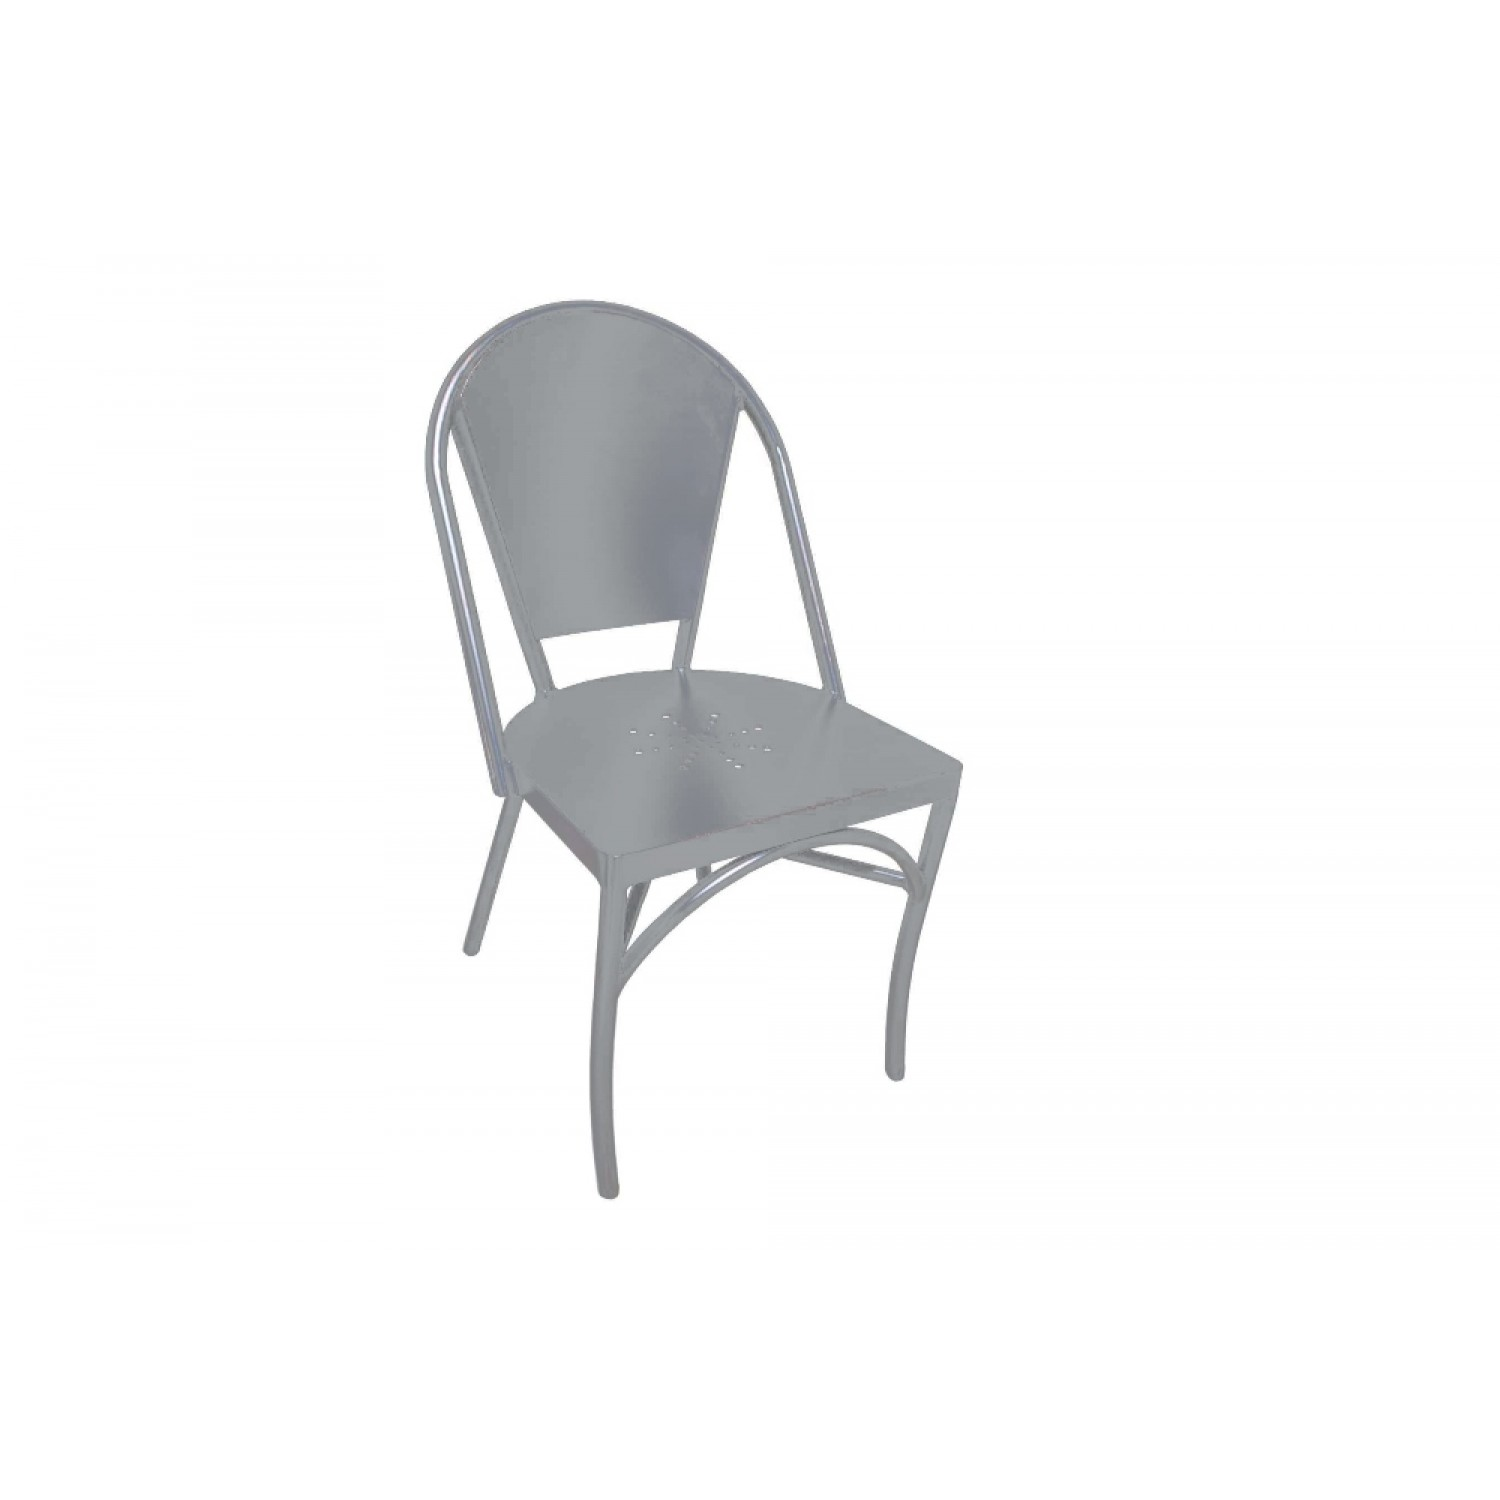 Harbour Outdoor Dining Chair